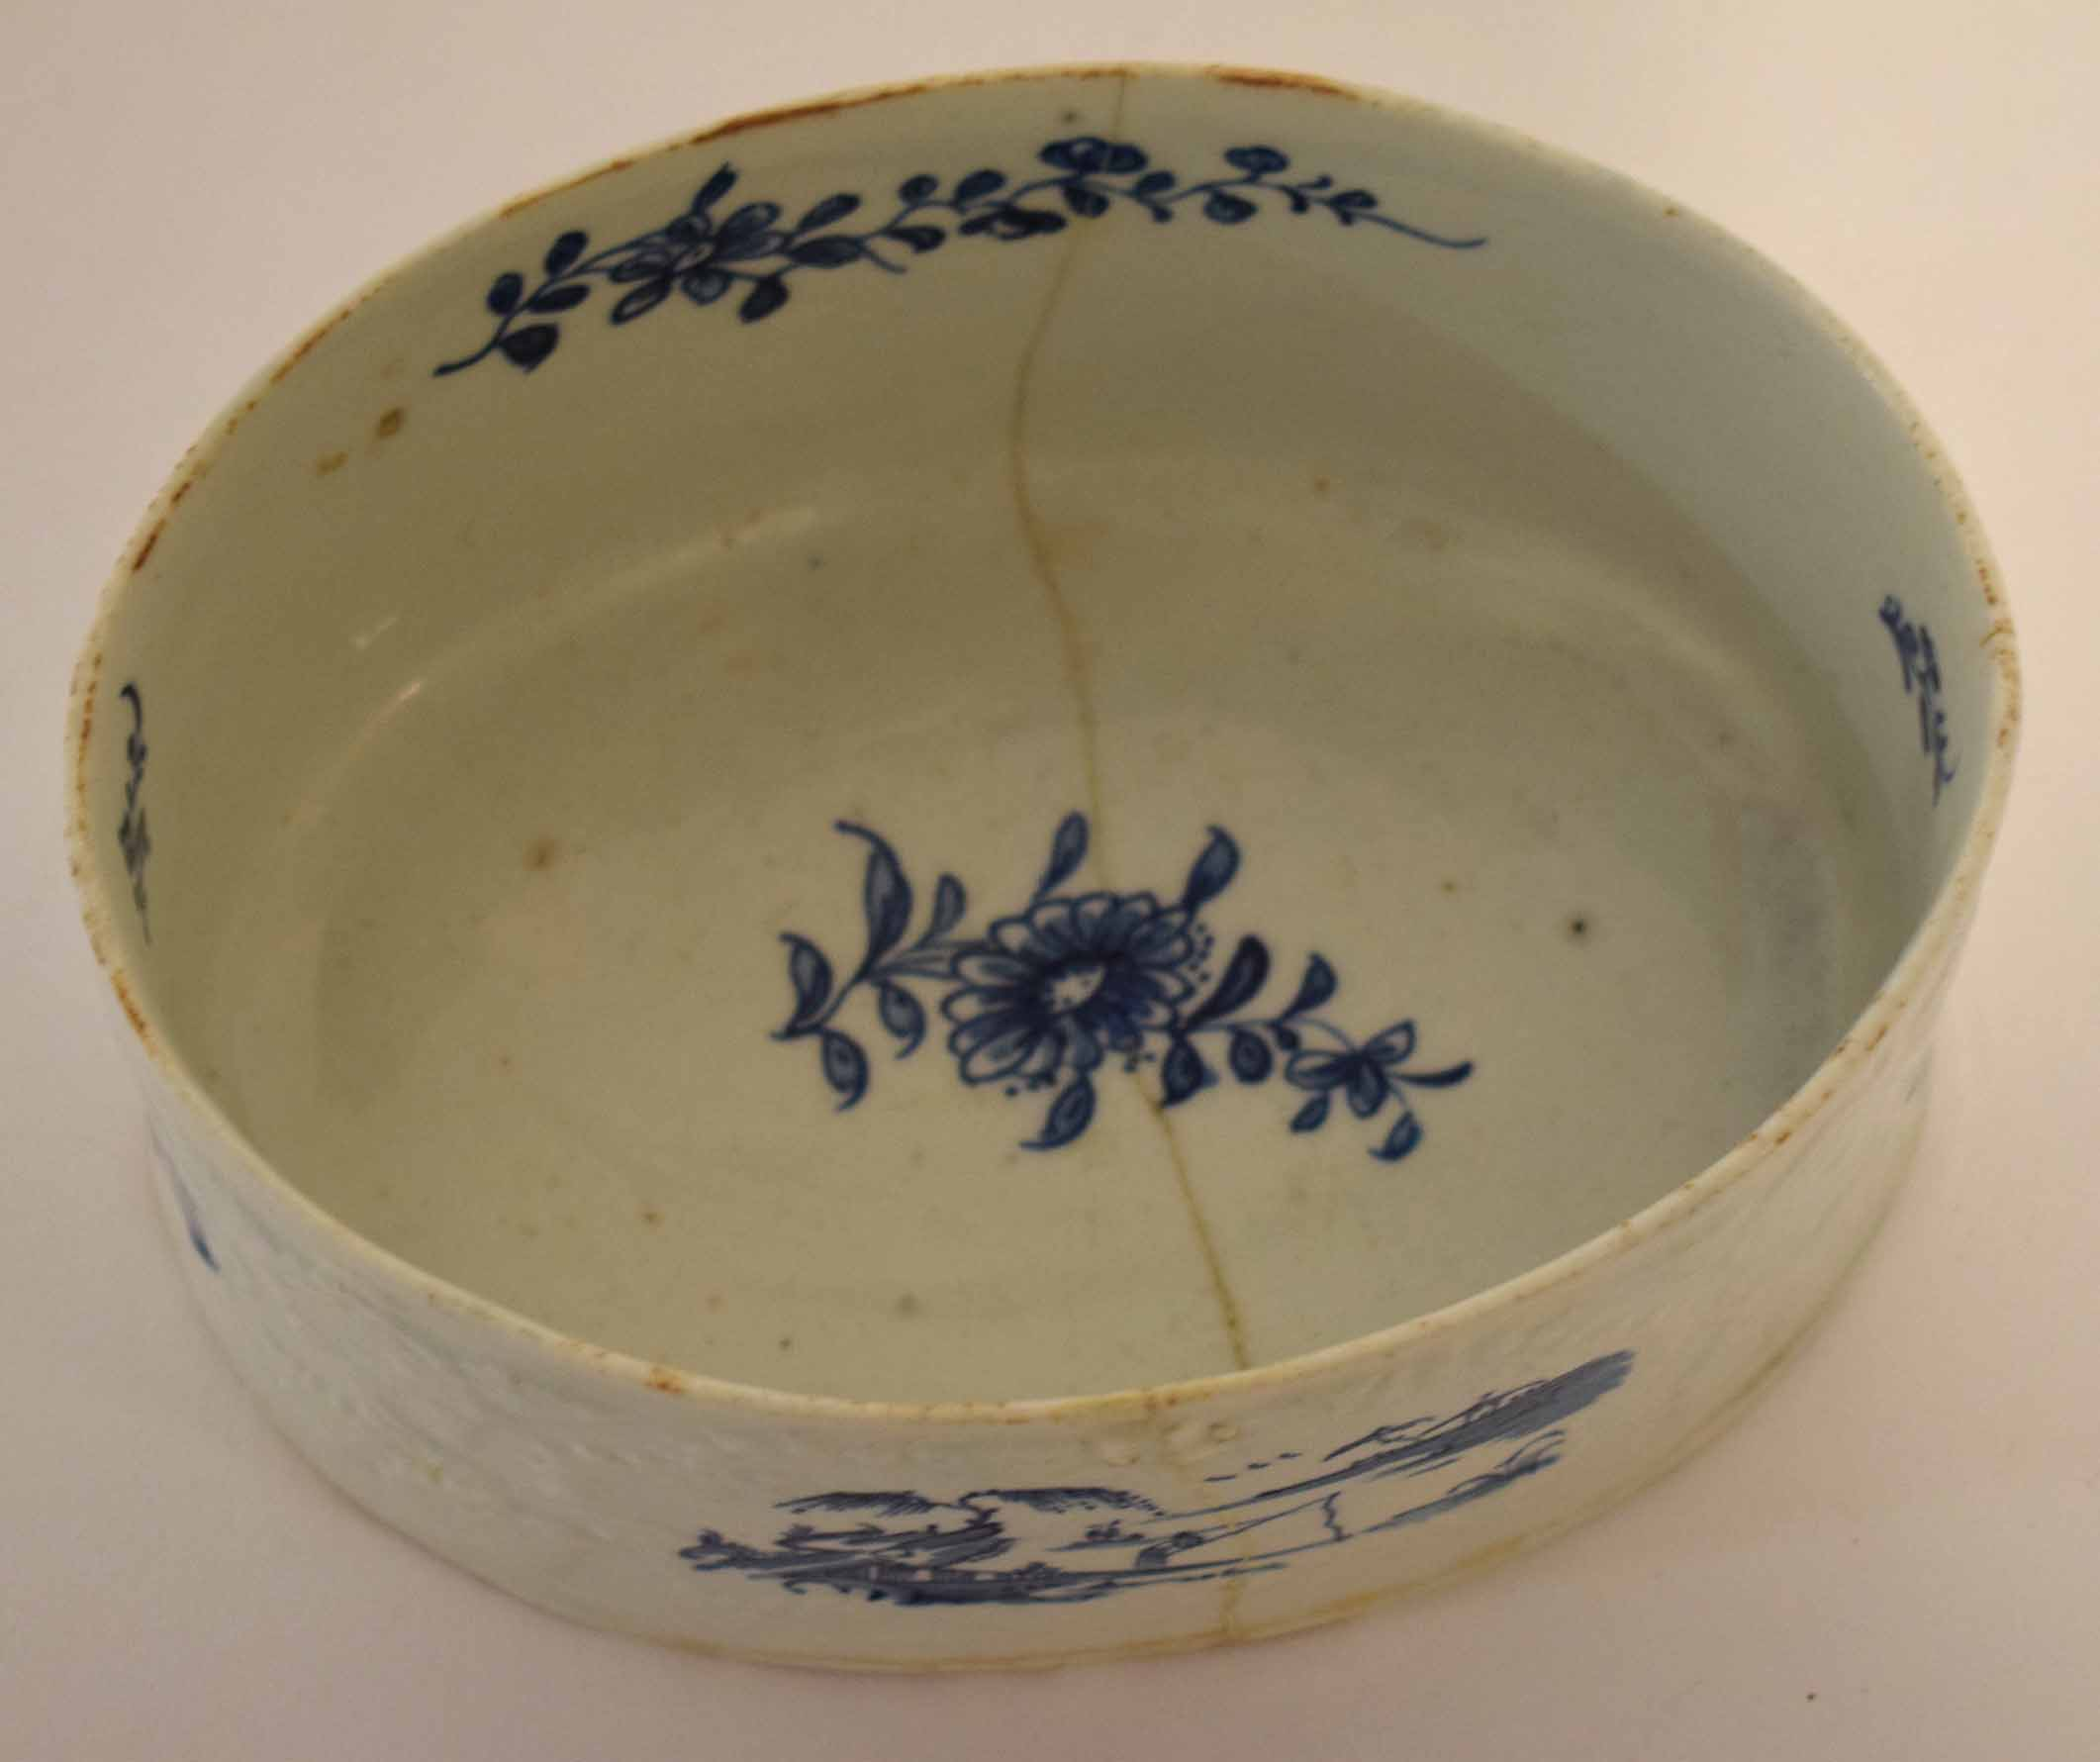 Lot 106 - Lowestoft oval shaped potting pan, circa 1765, the moulded body decorated with blue and white scenes